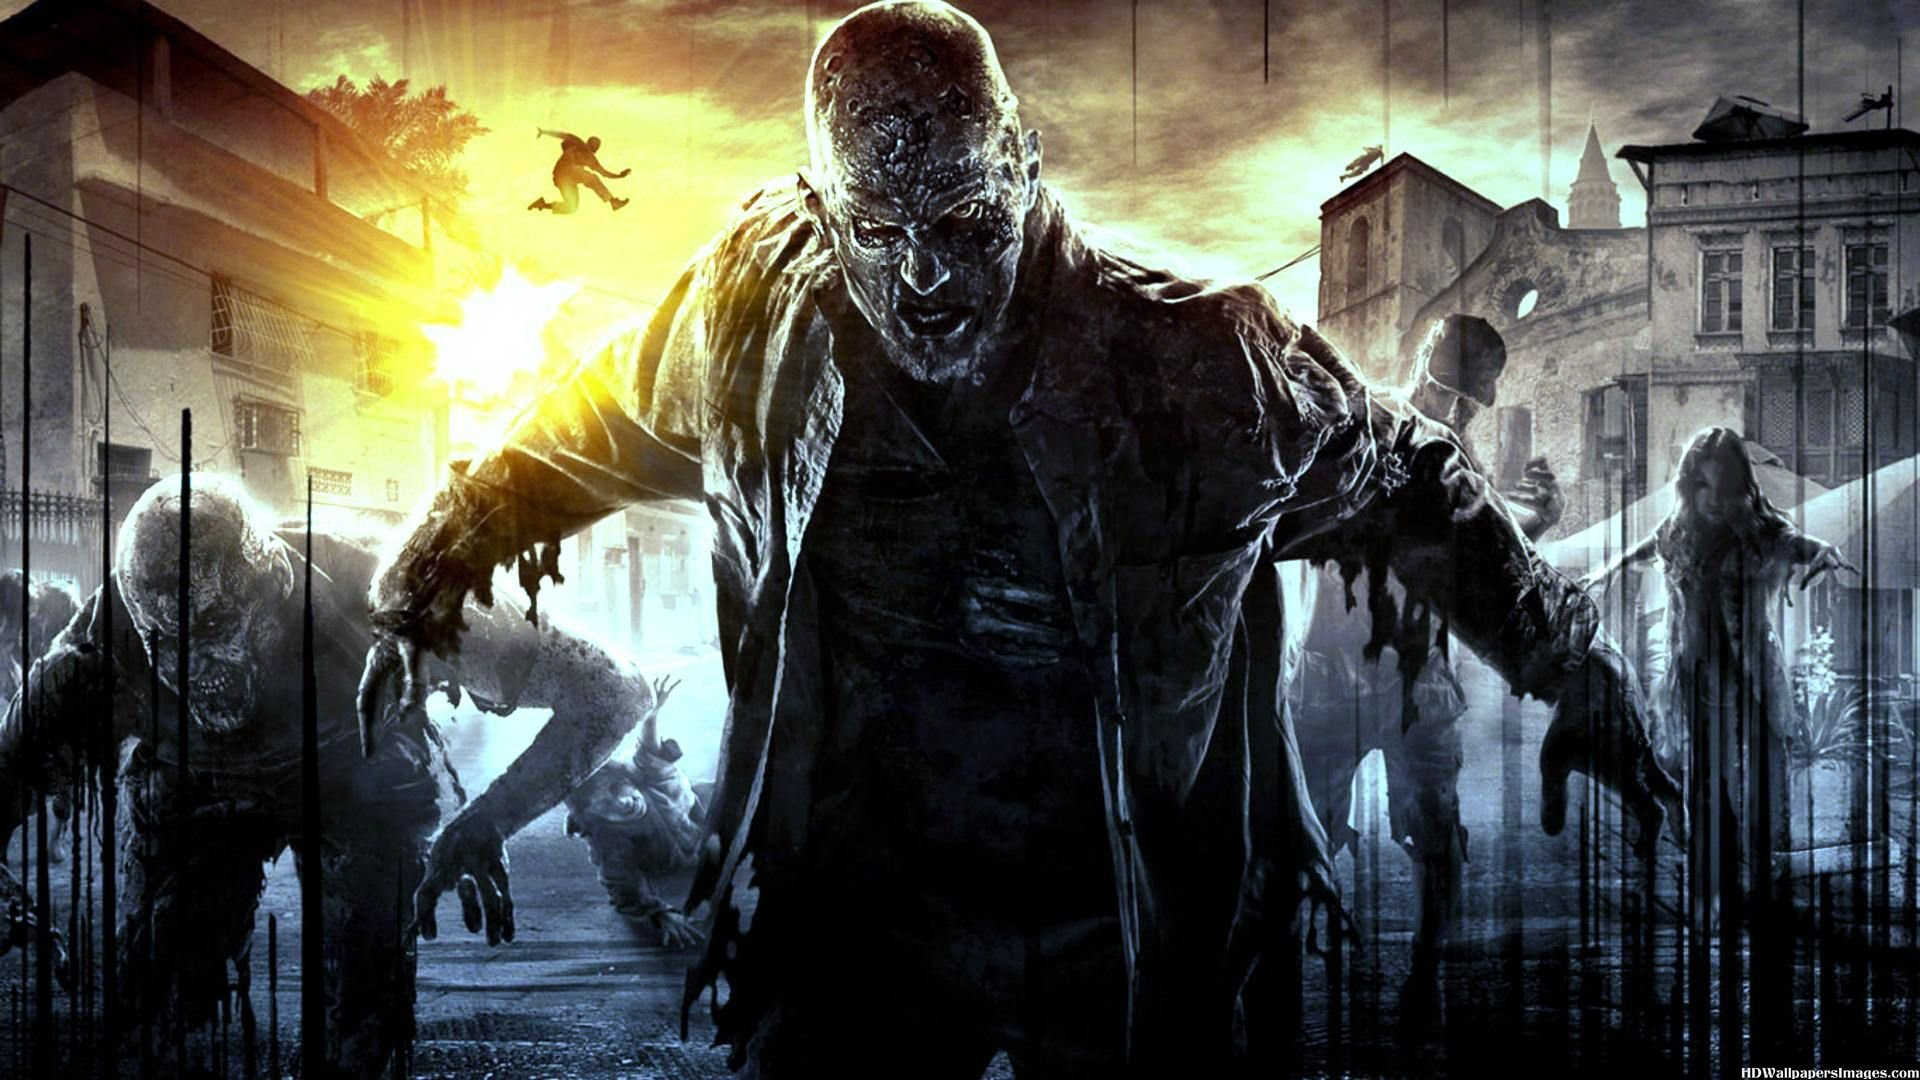 DYING LIGHT horror survival zombie apocalyptic dark action 1dlight rpg 1920x1080